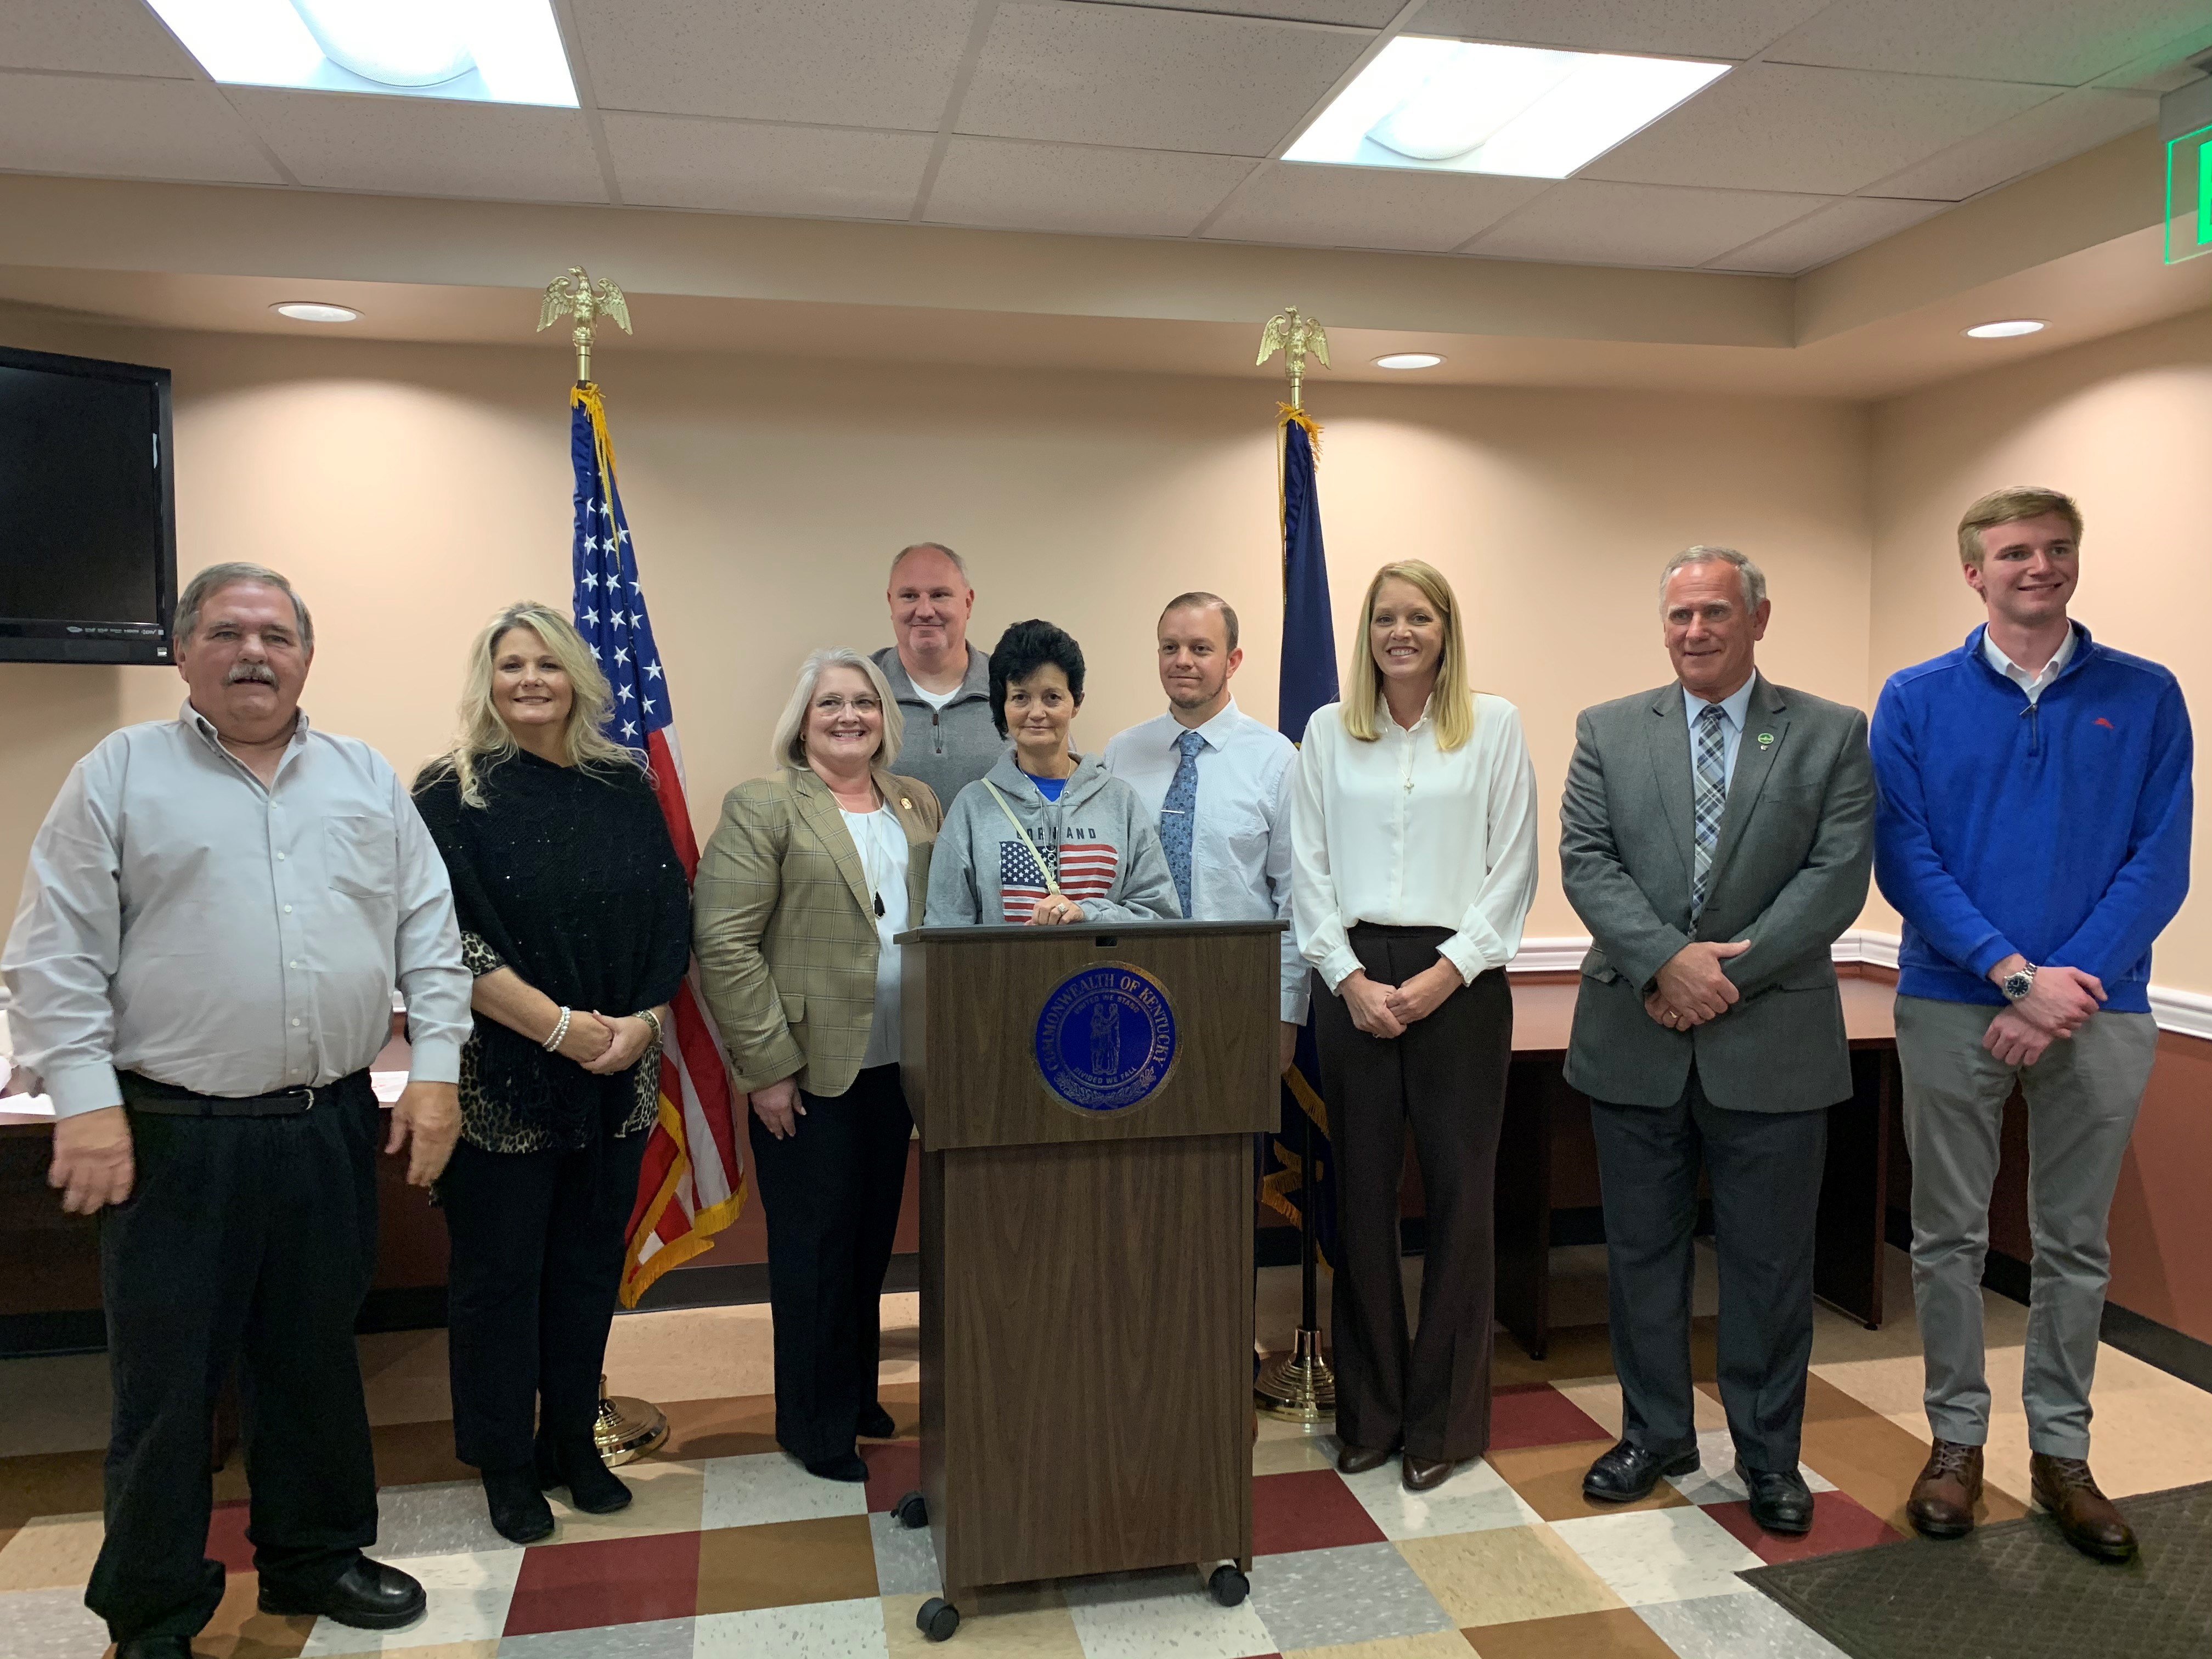 City of Stanton in Powell County Receives $1,312,500 Grant from Appalachian Regional Commission to Complete Wastewater Plant Repair Project